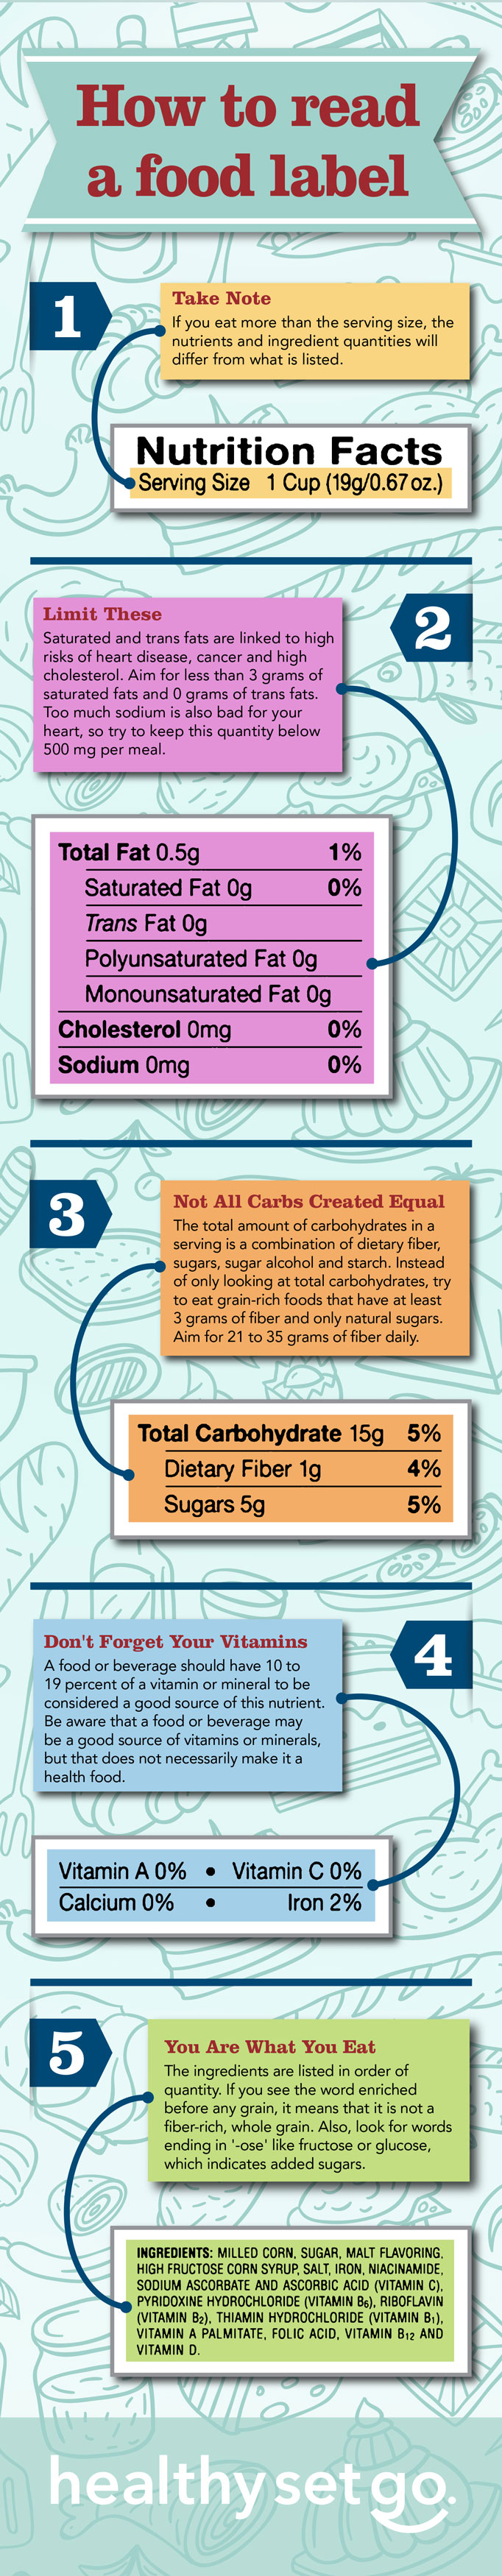 How to read a food label infographic